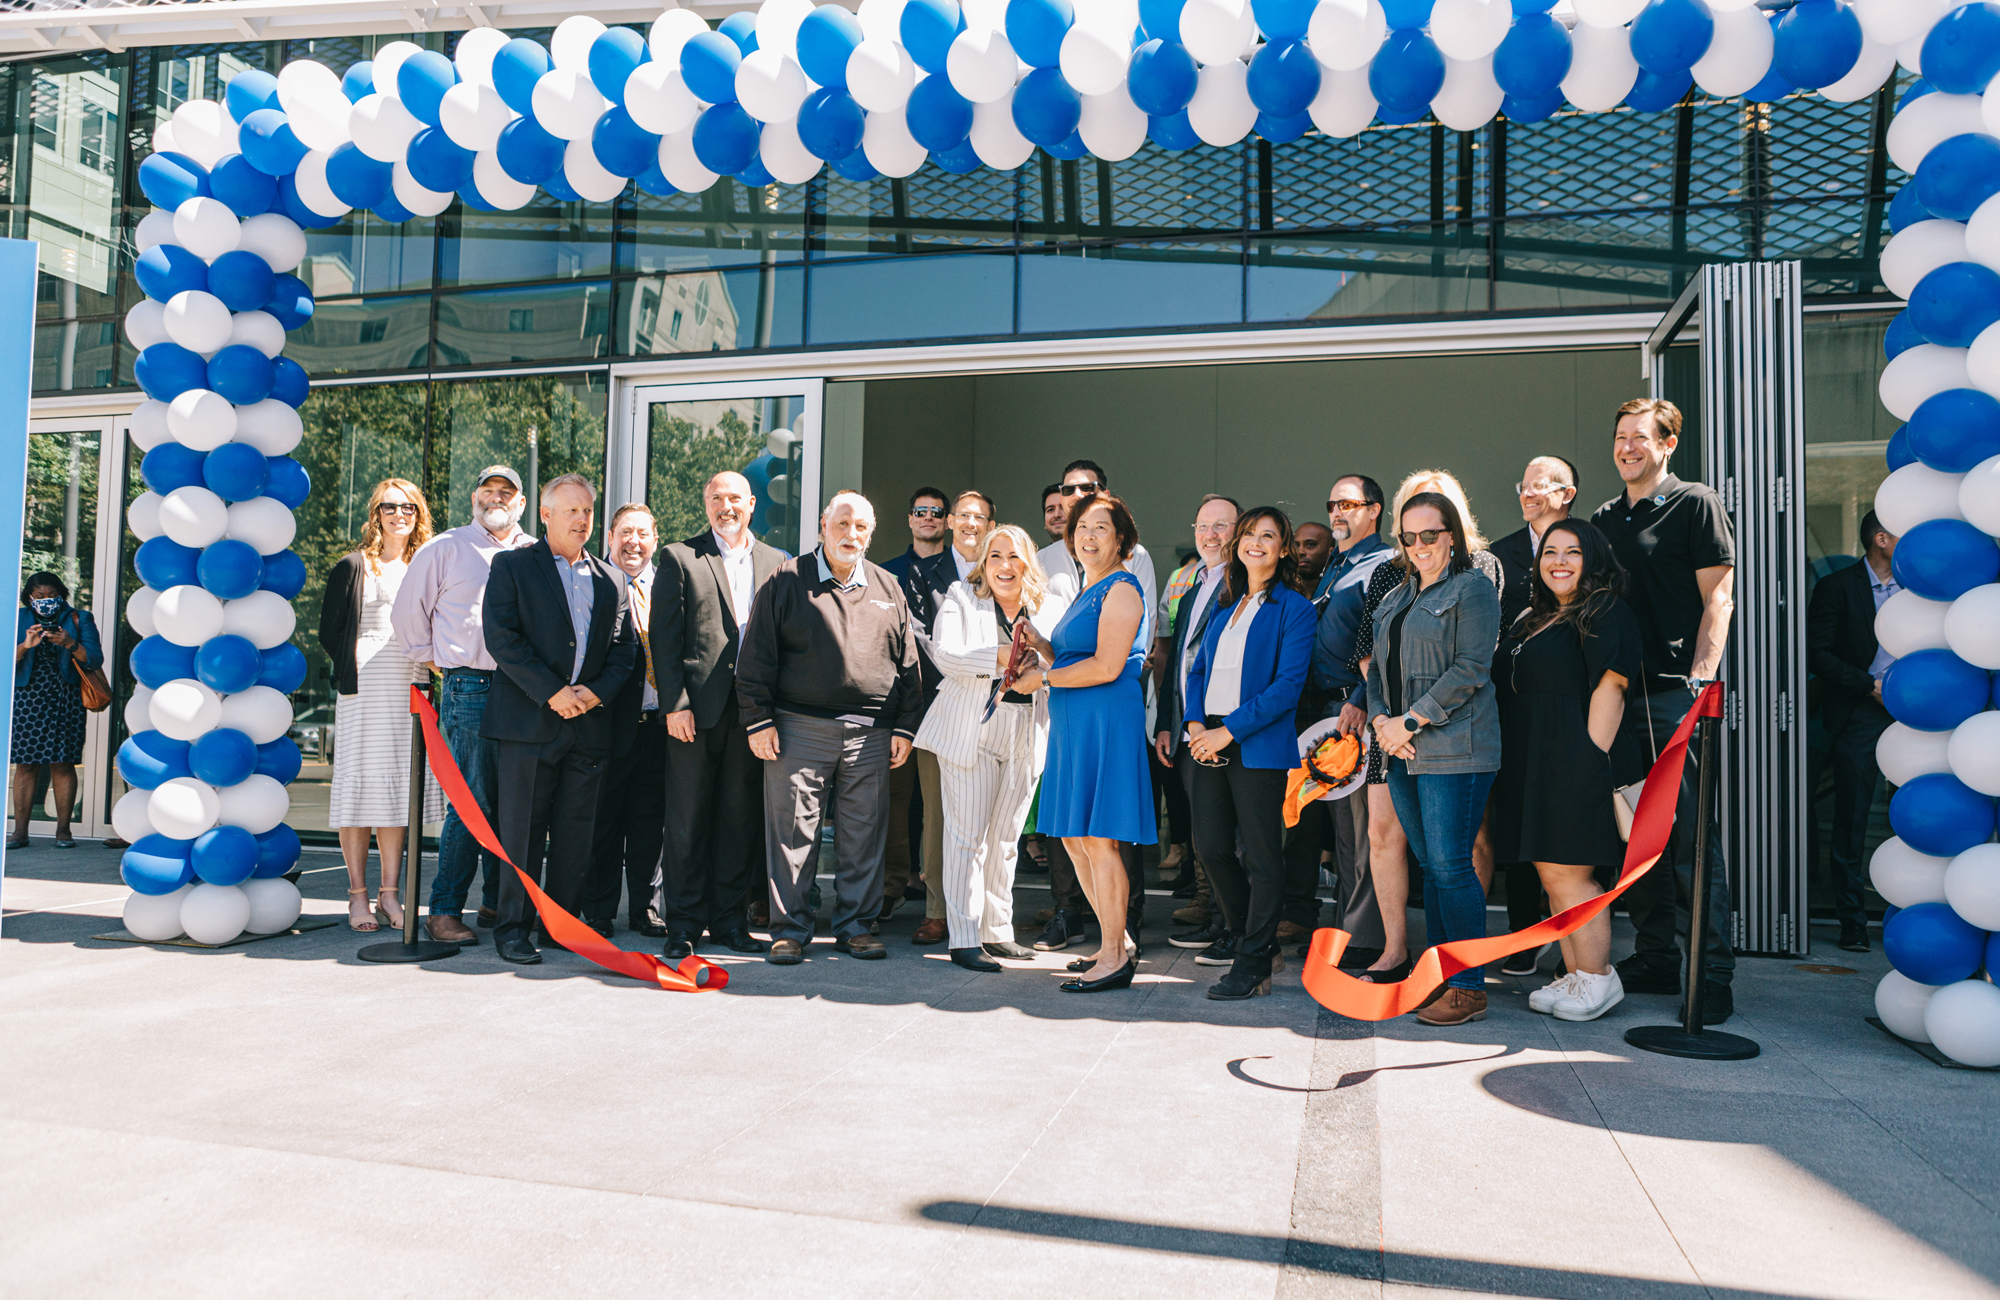 Successful opening of the City of Sacramento SAFE Credit UnionConvention Center celebrated with ribbon-cutting ceremony